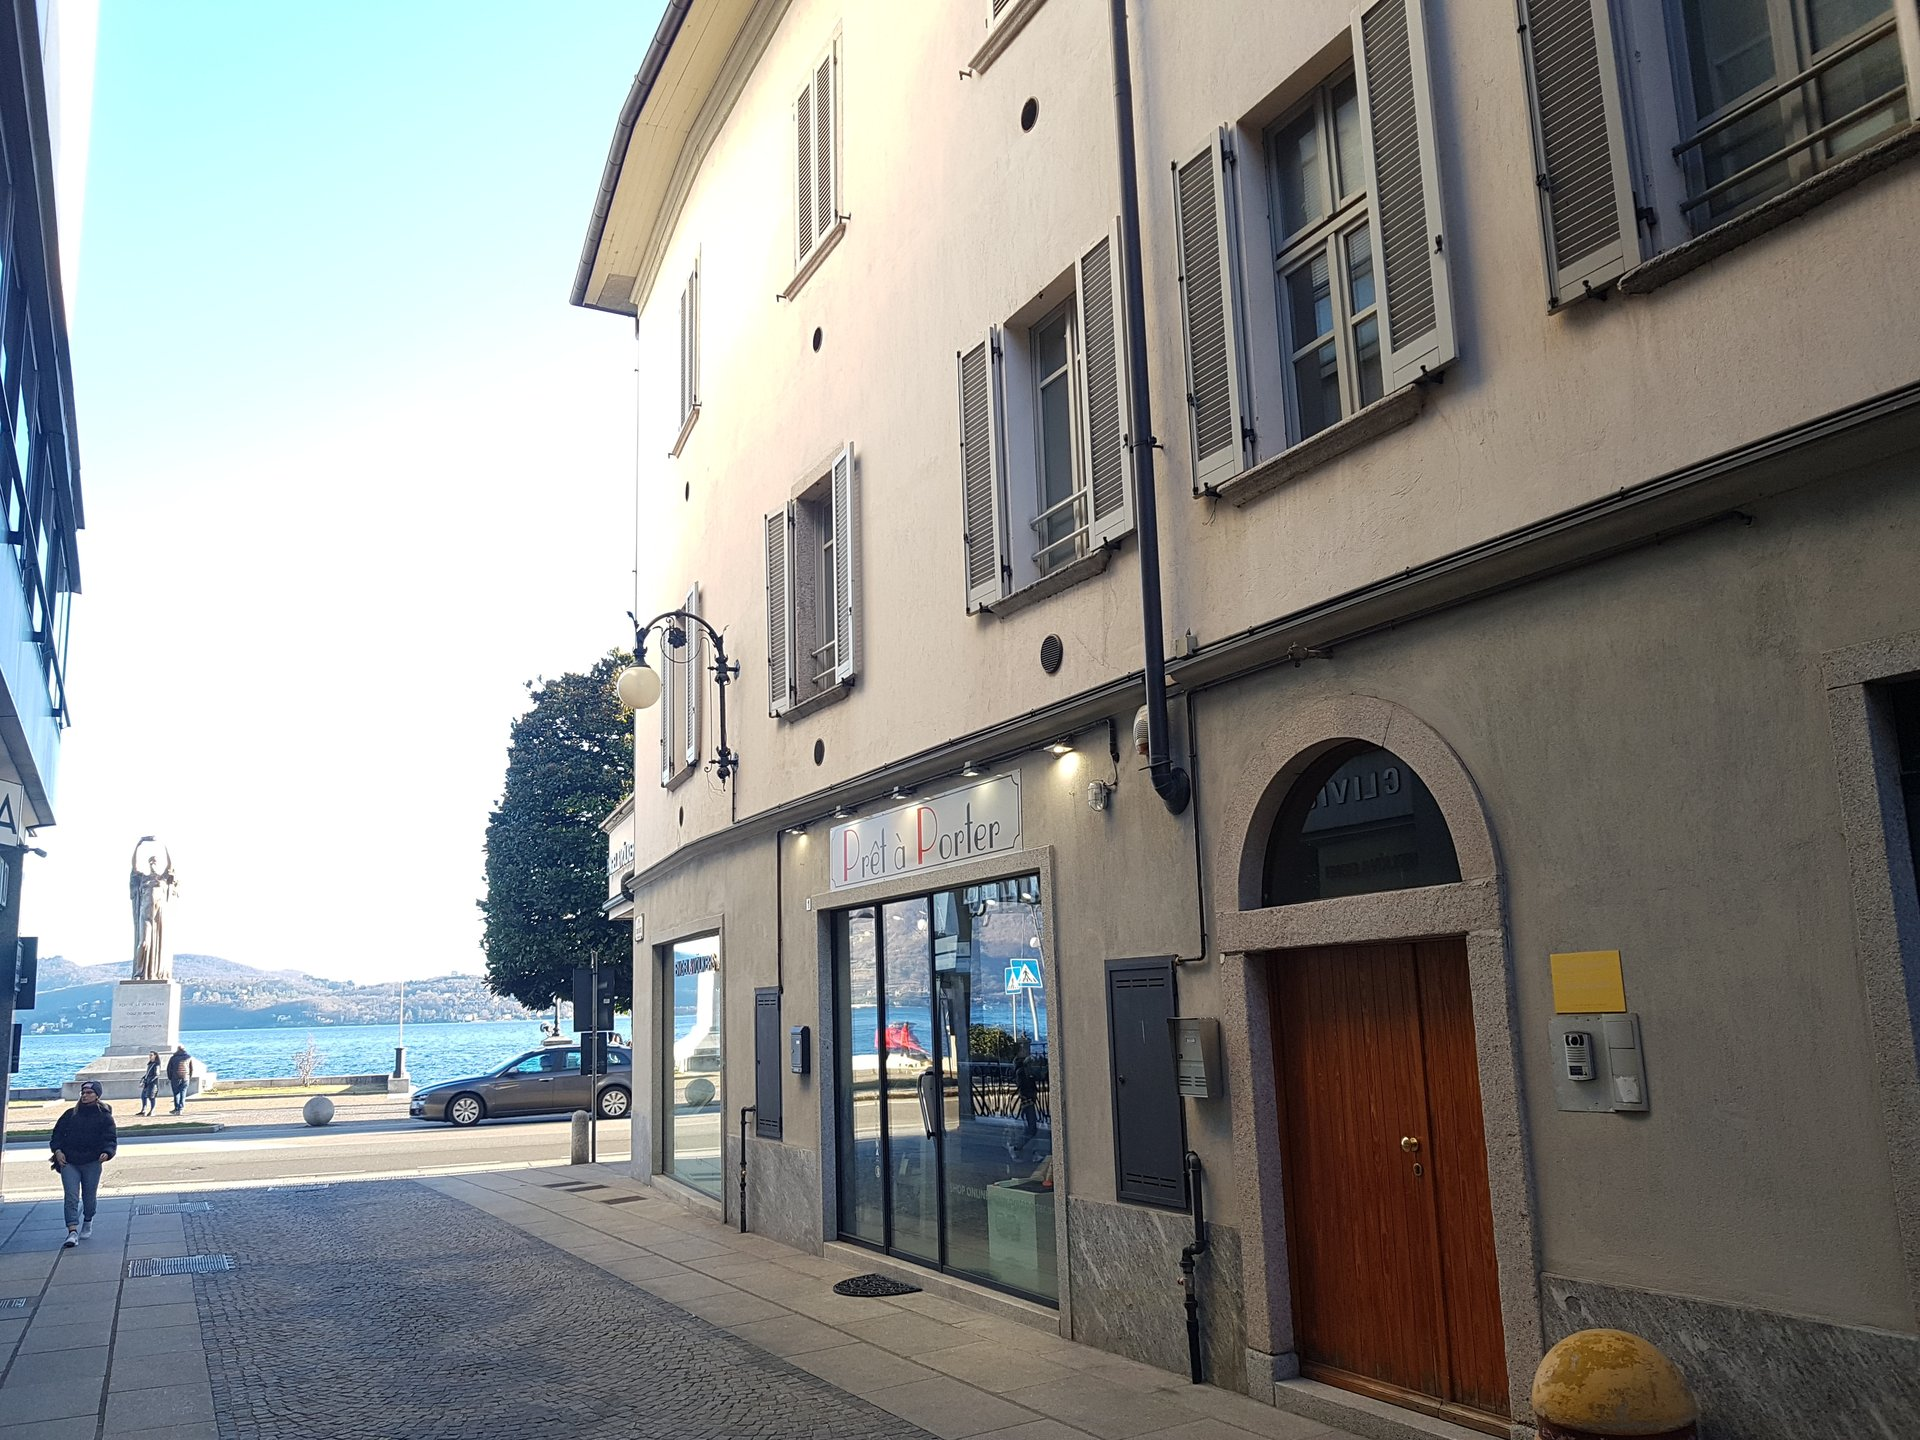 Renovated apartment for sale in Verbania in front of Lake Maggiore - glimpse